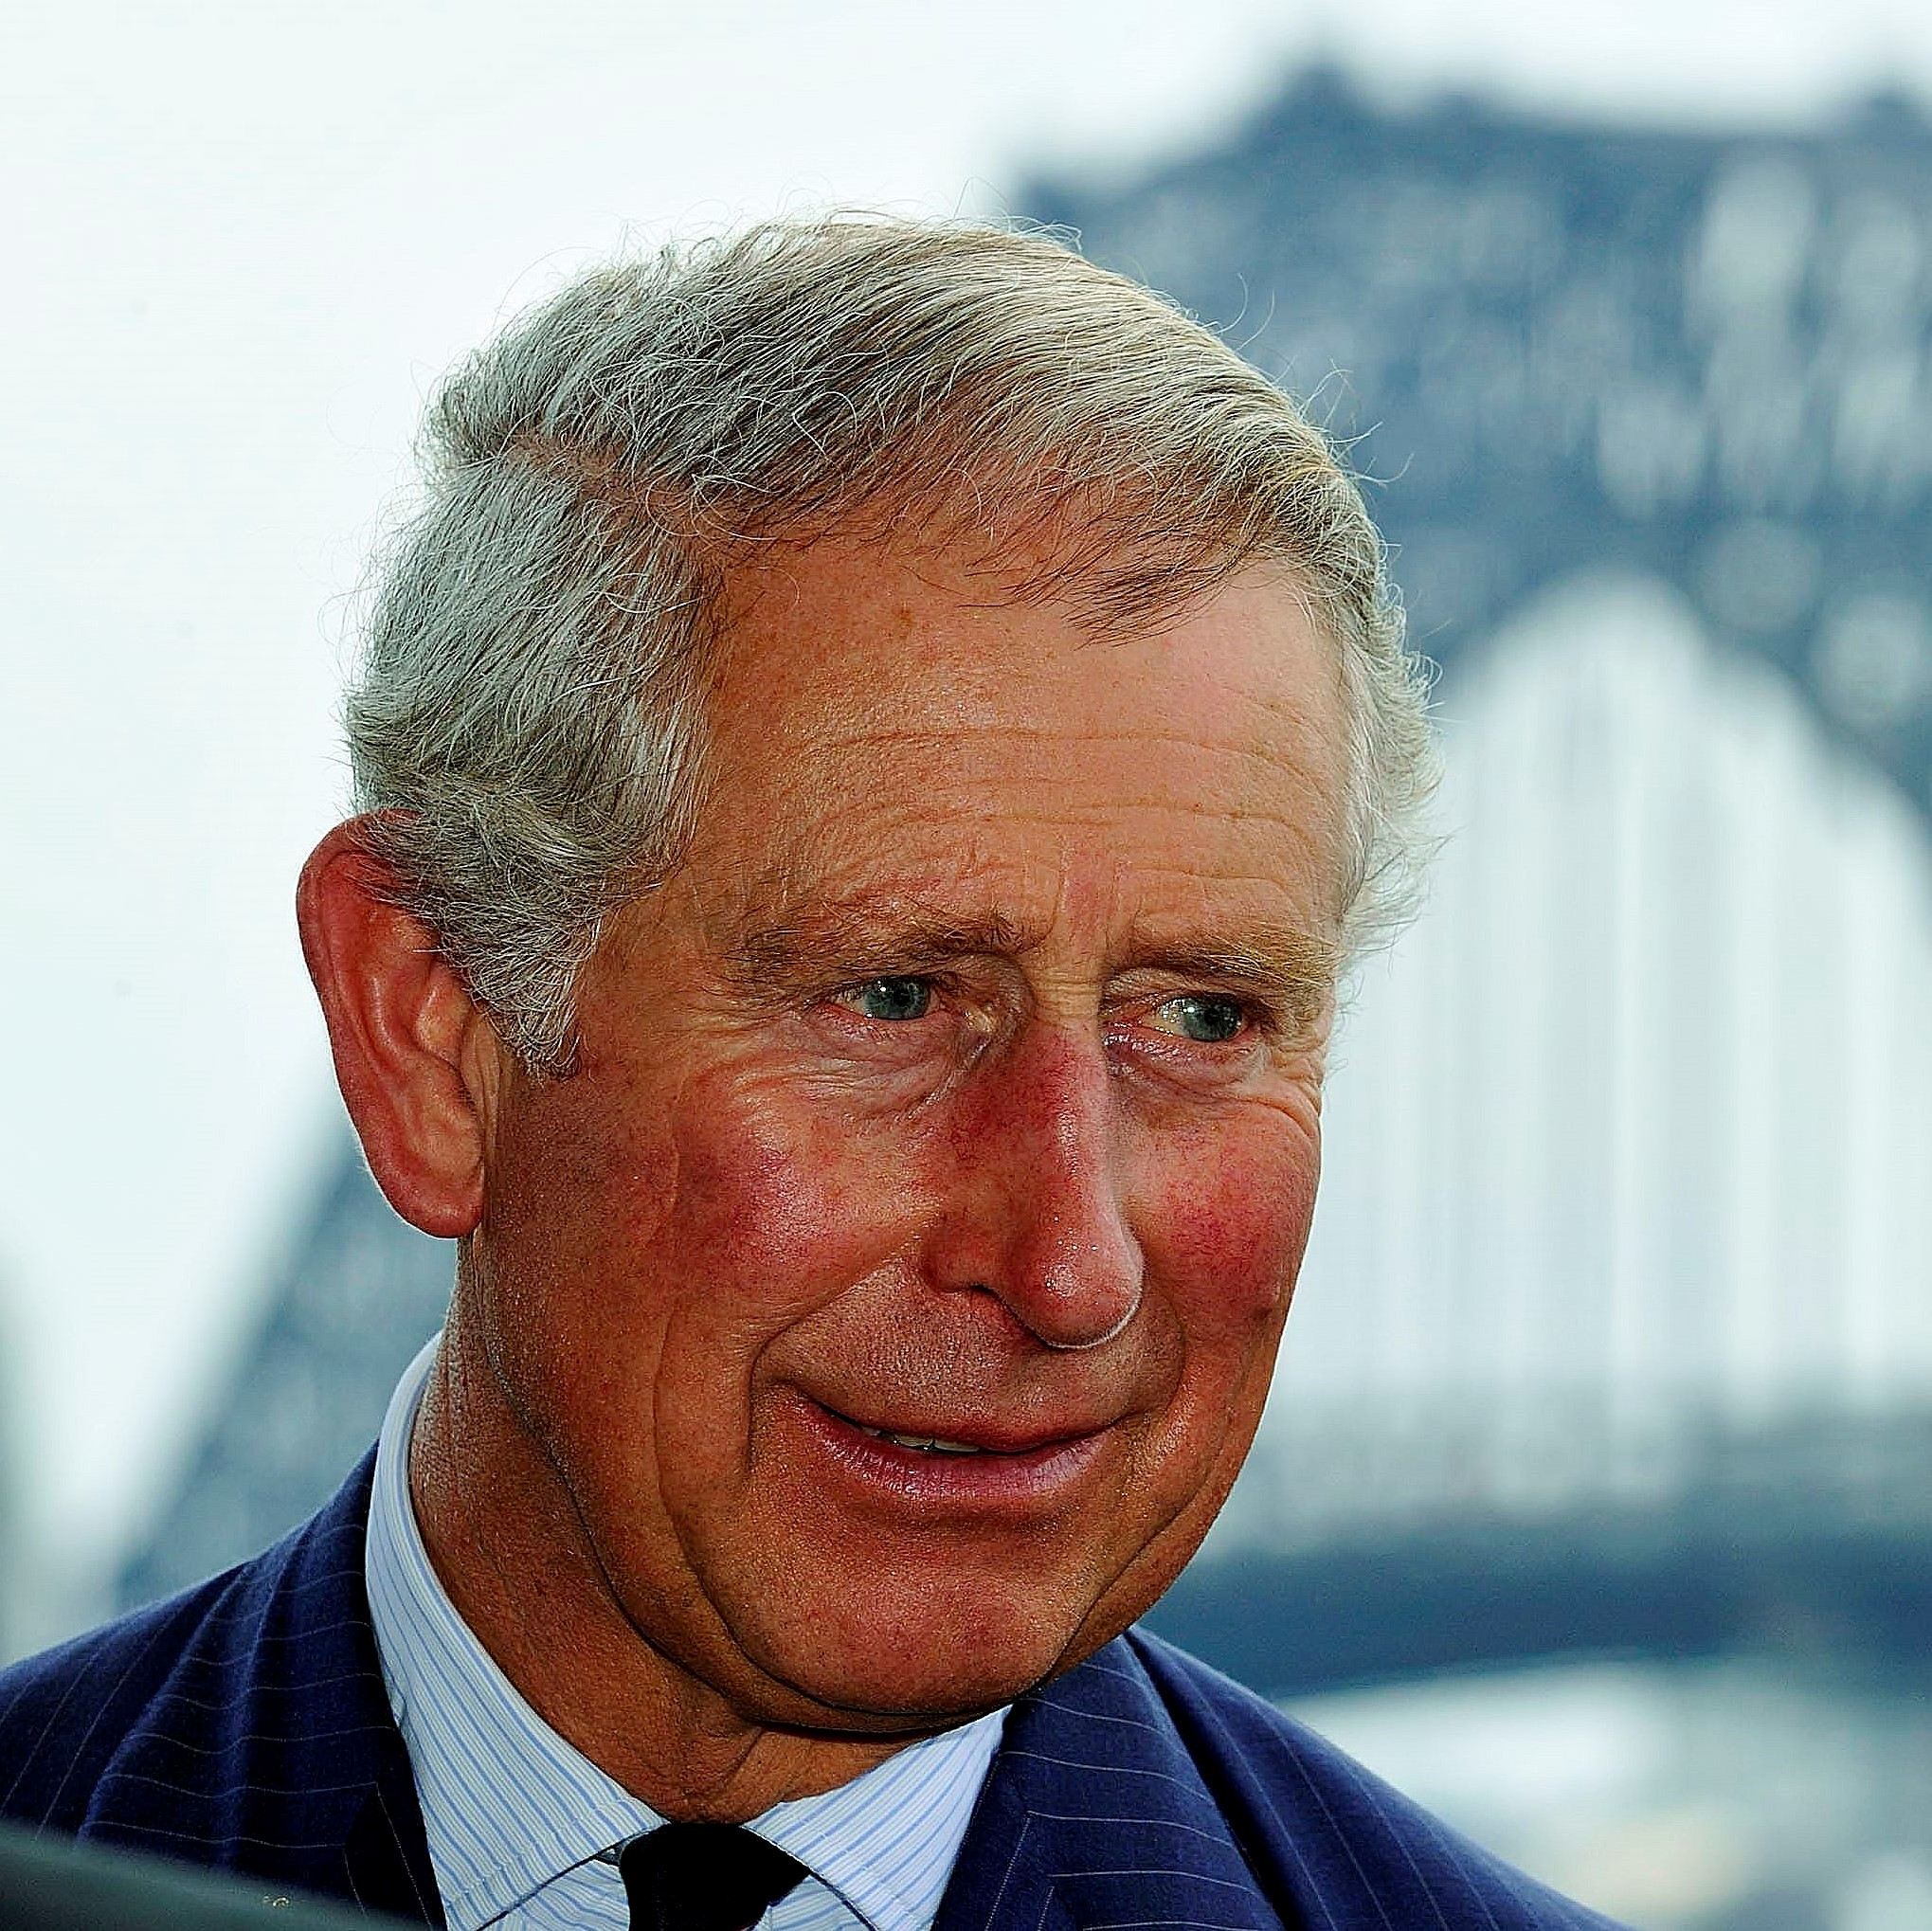 His Royal Highness in Sydney